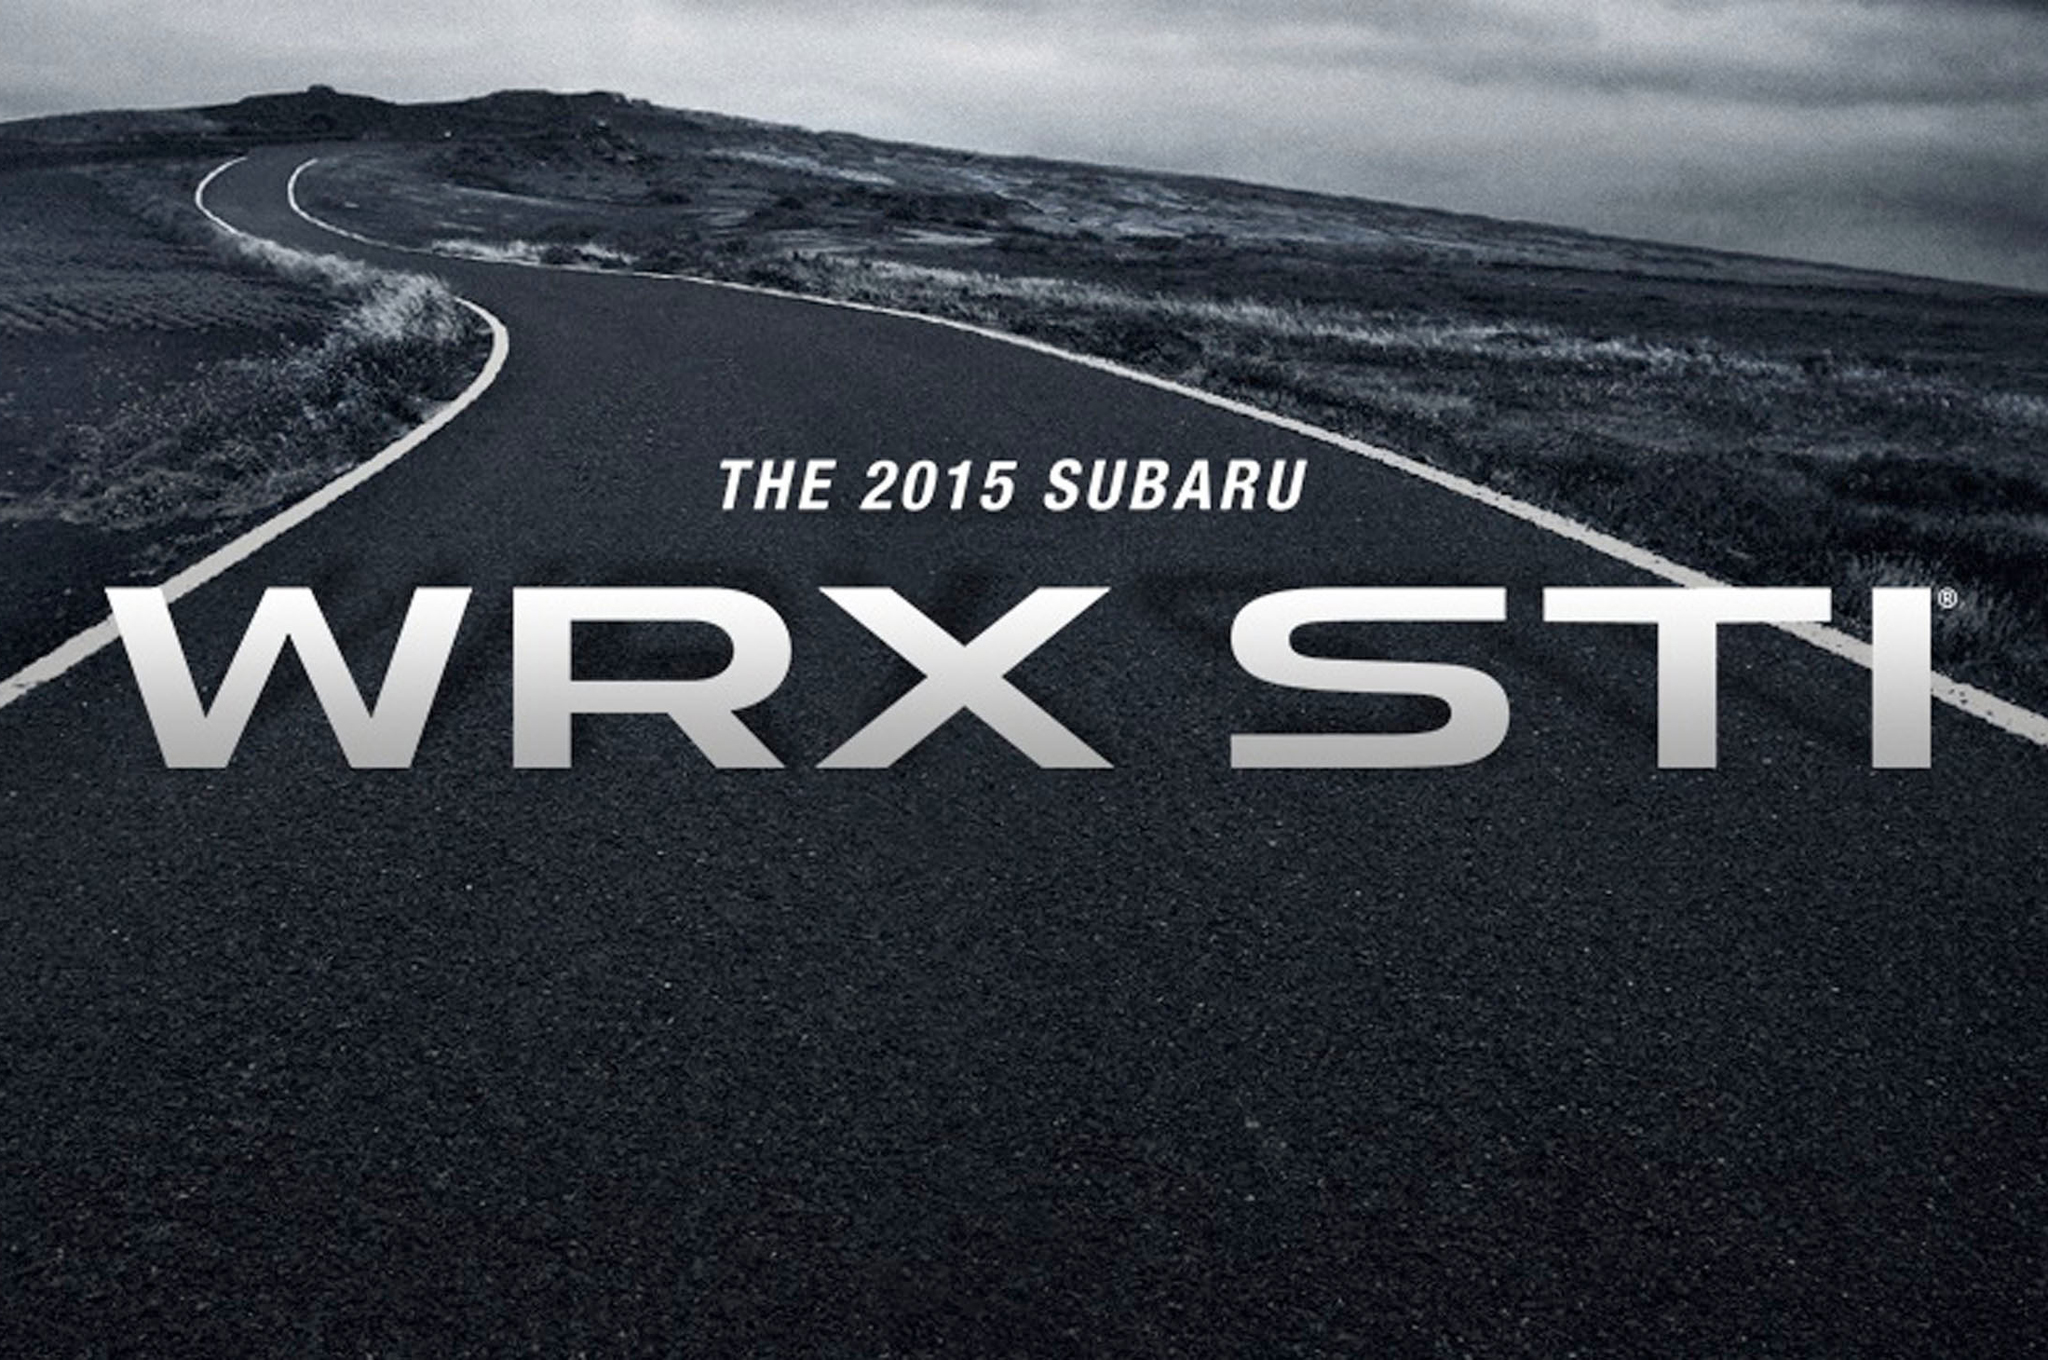 2015 Subaru Wrx Sti For Sale >> [50+] Subaru STI Logo Wallpaper on WallpaperSafari